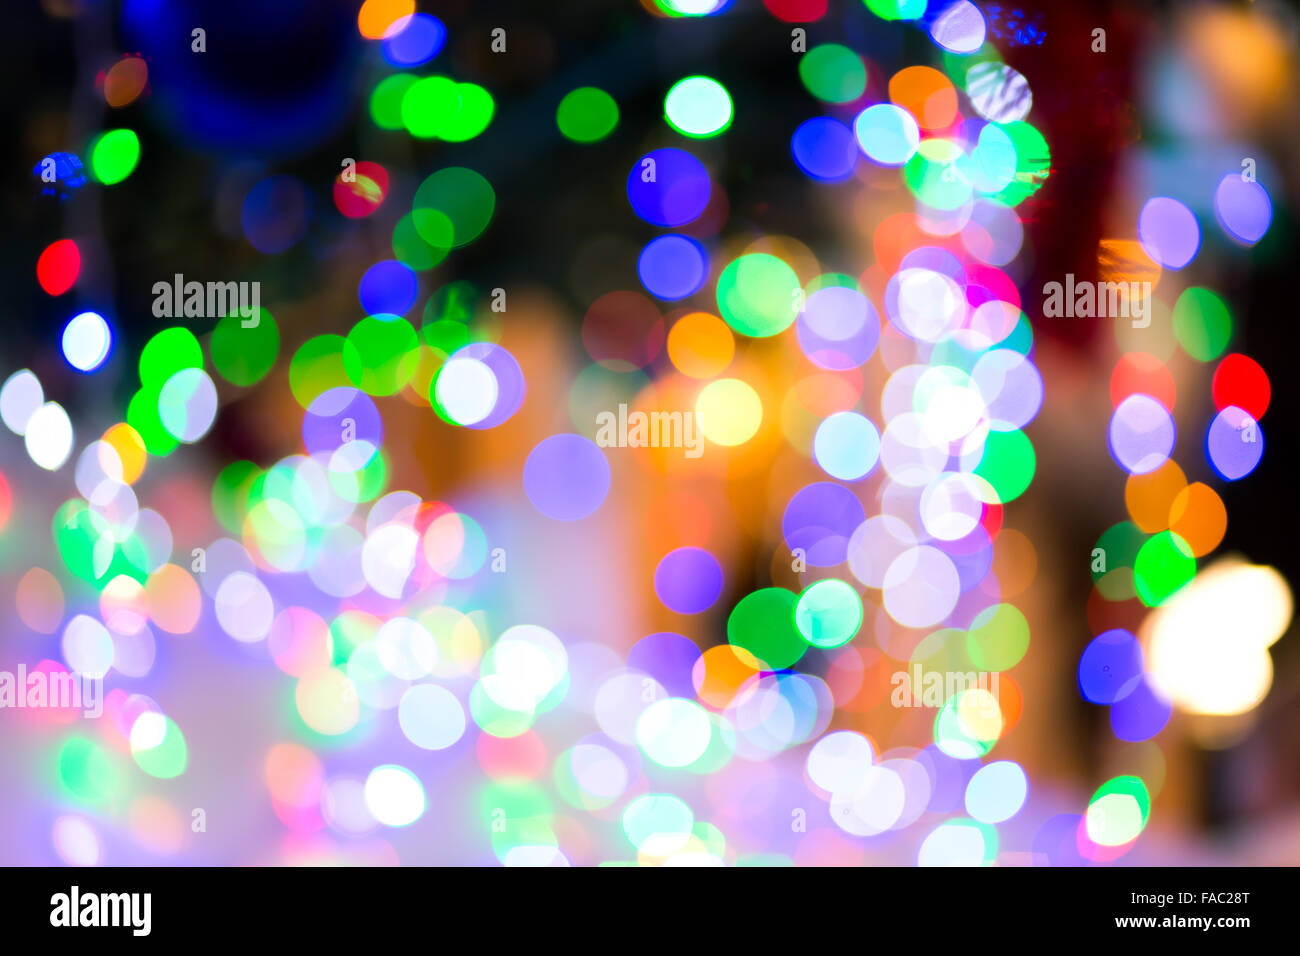 Garland blurred Christmas colorful lights background - Stock Image